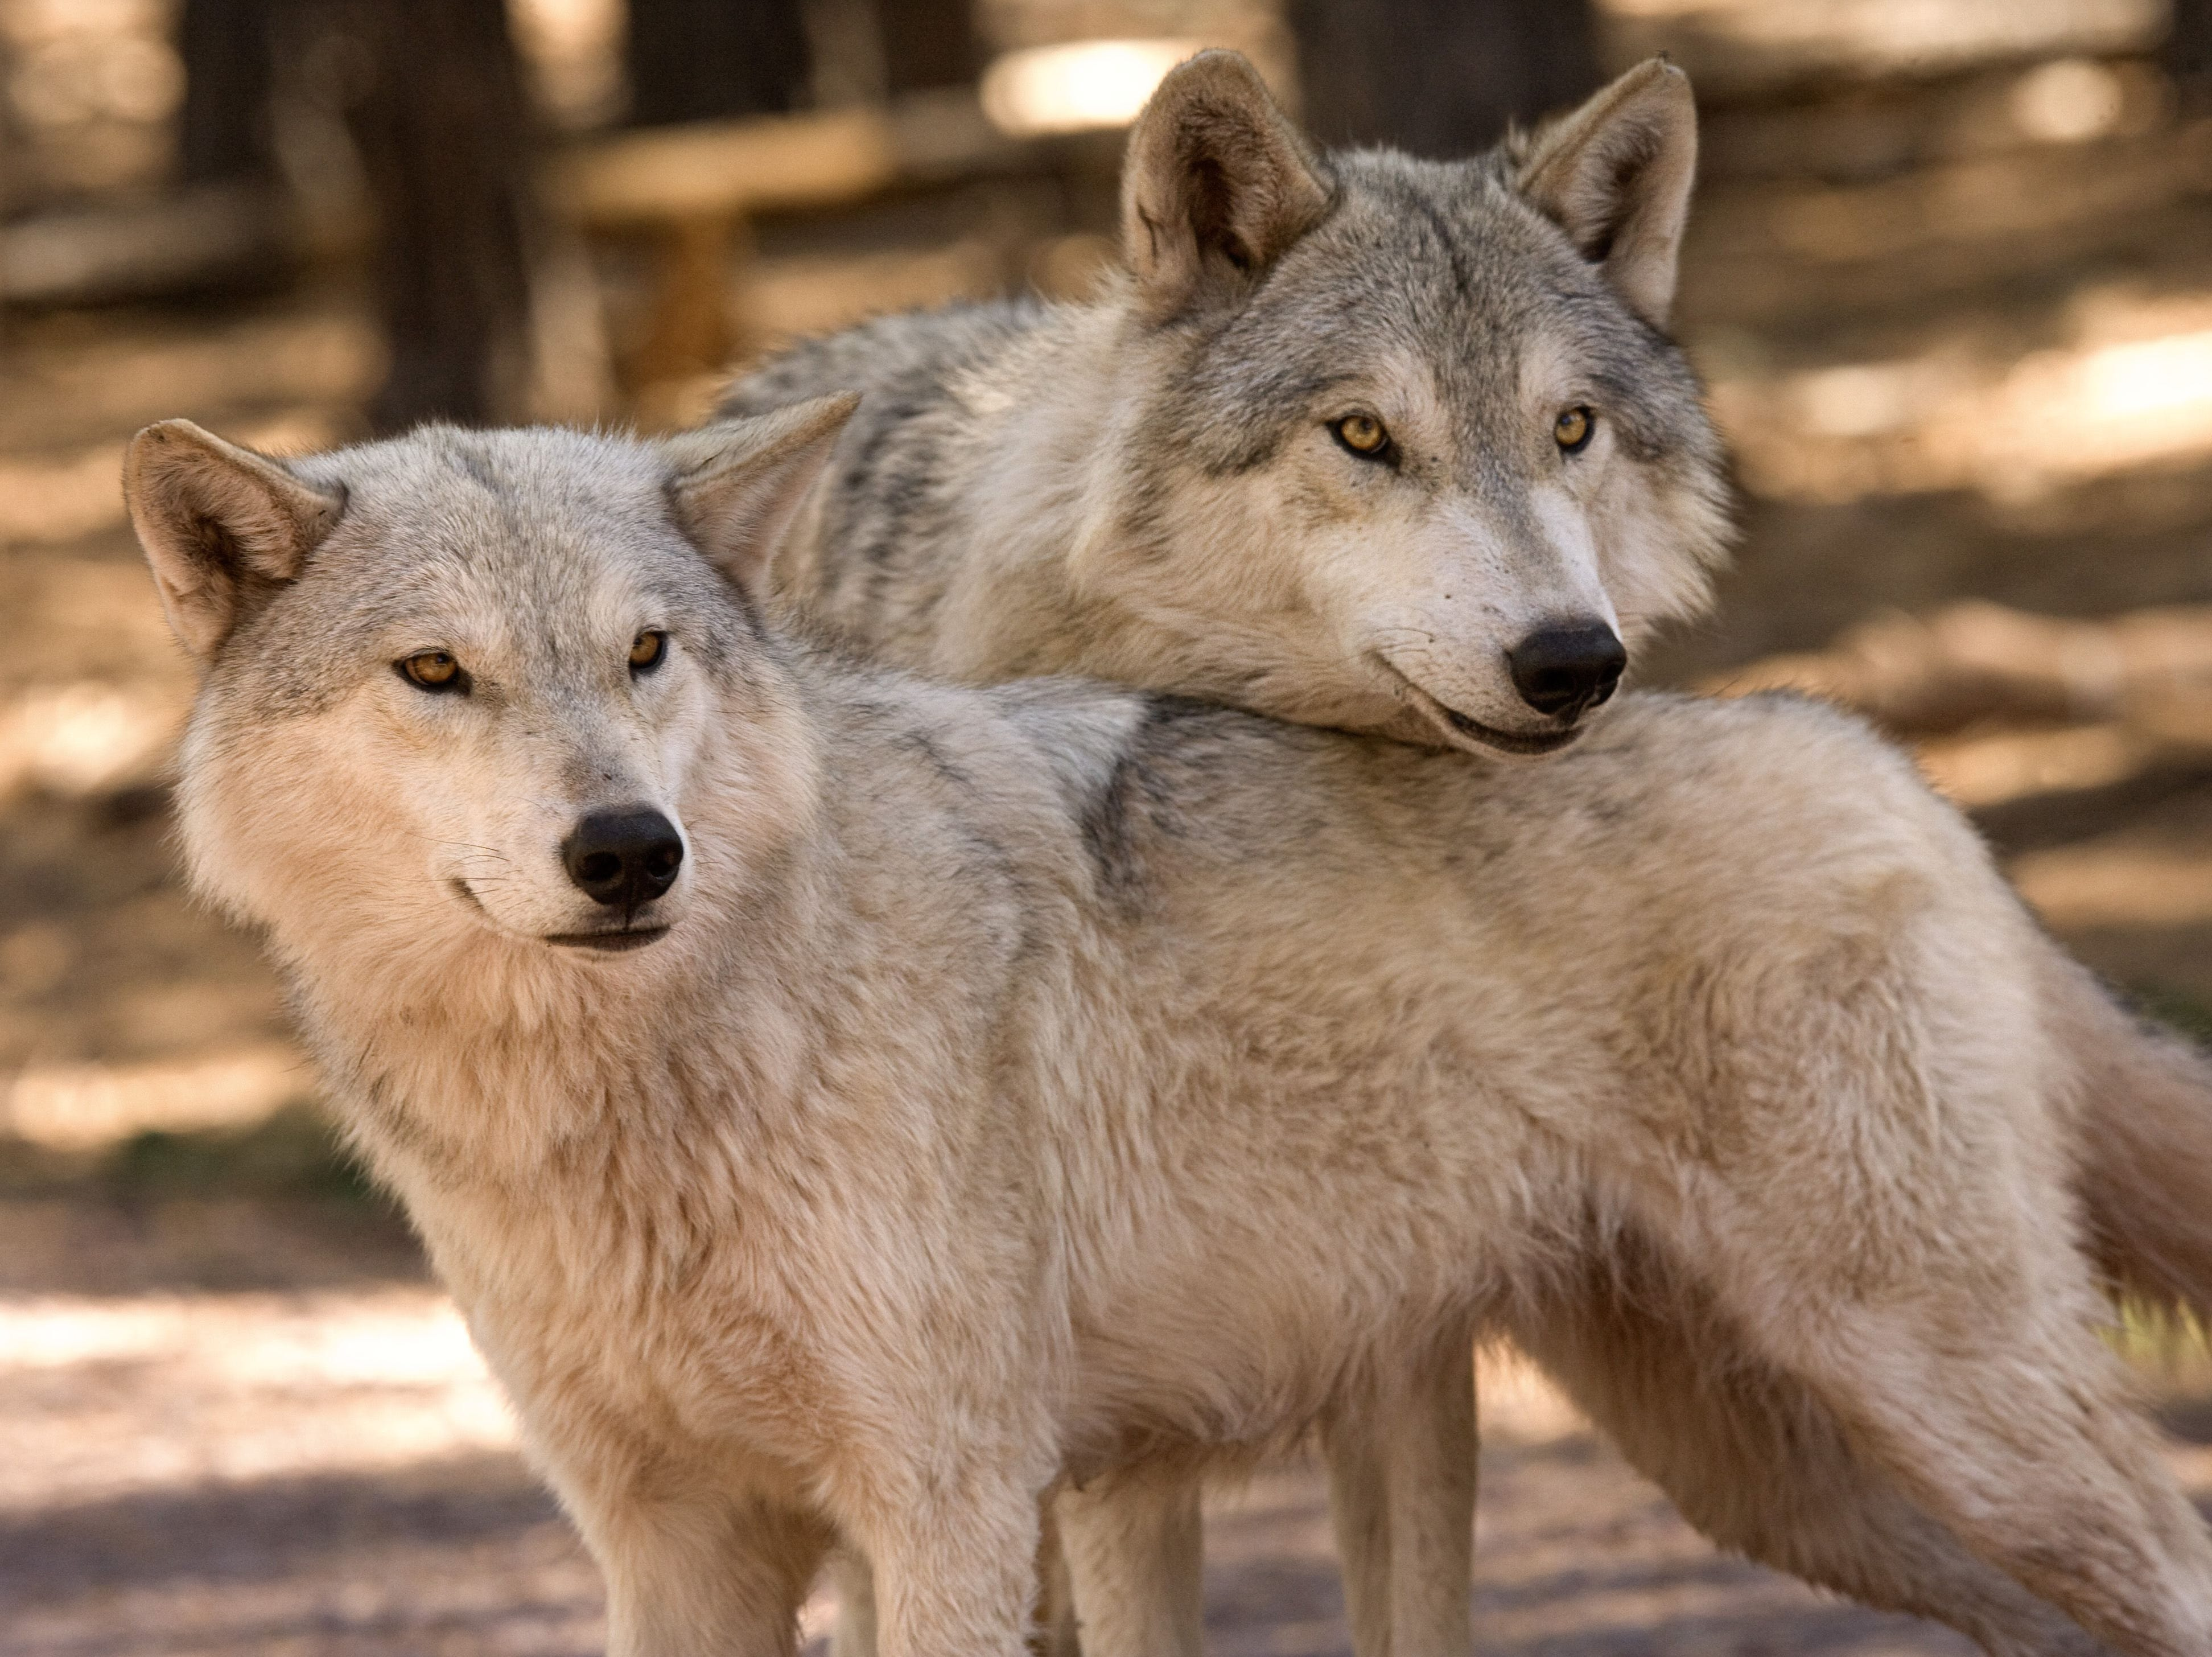 Bearizona Alaskan Tundra wolves Kay and Geronimo, they don't have to hug to know they've got each other's backs.